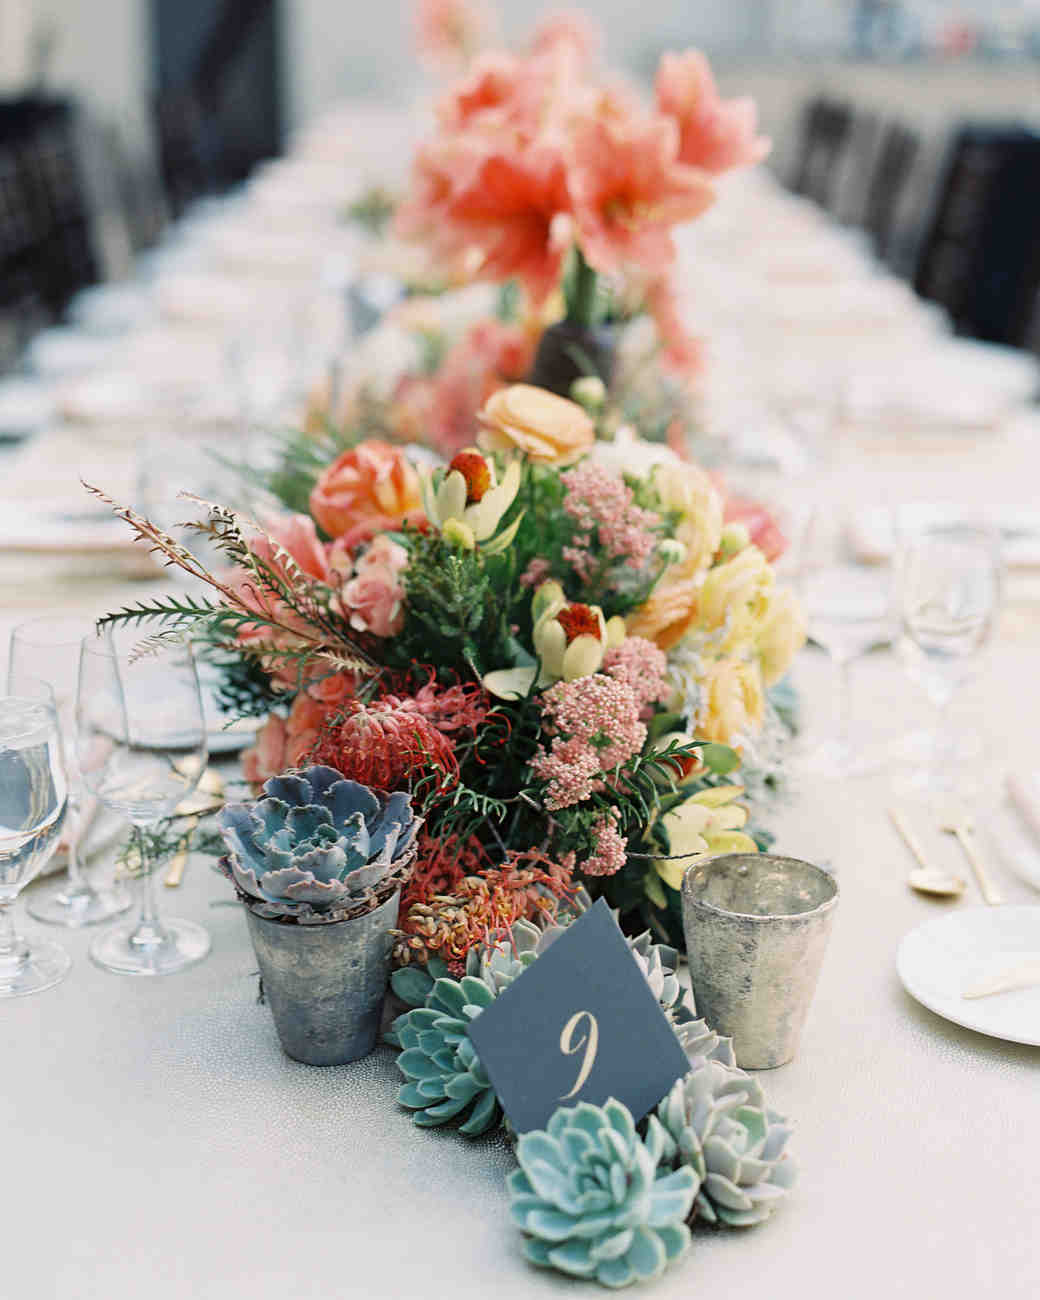 Wedding Flower Bouquets Ideas: 50 Wedding Centerpiece Ideas We Love